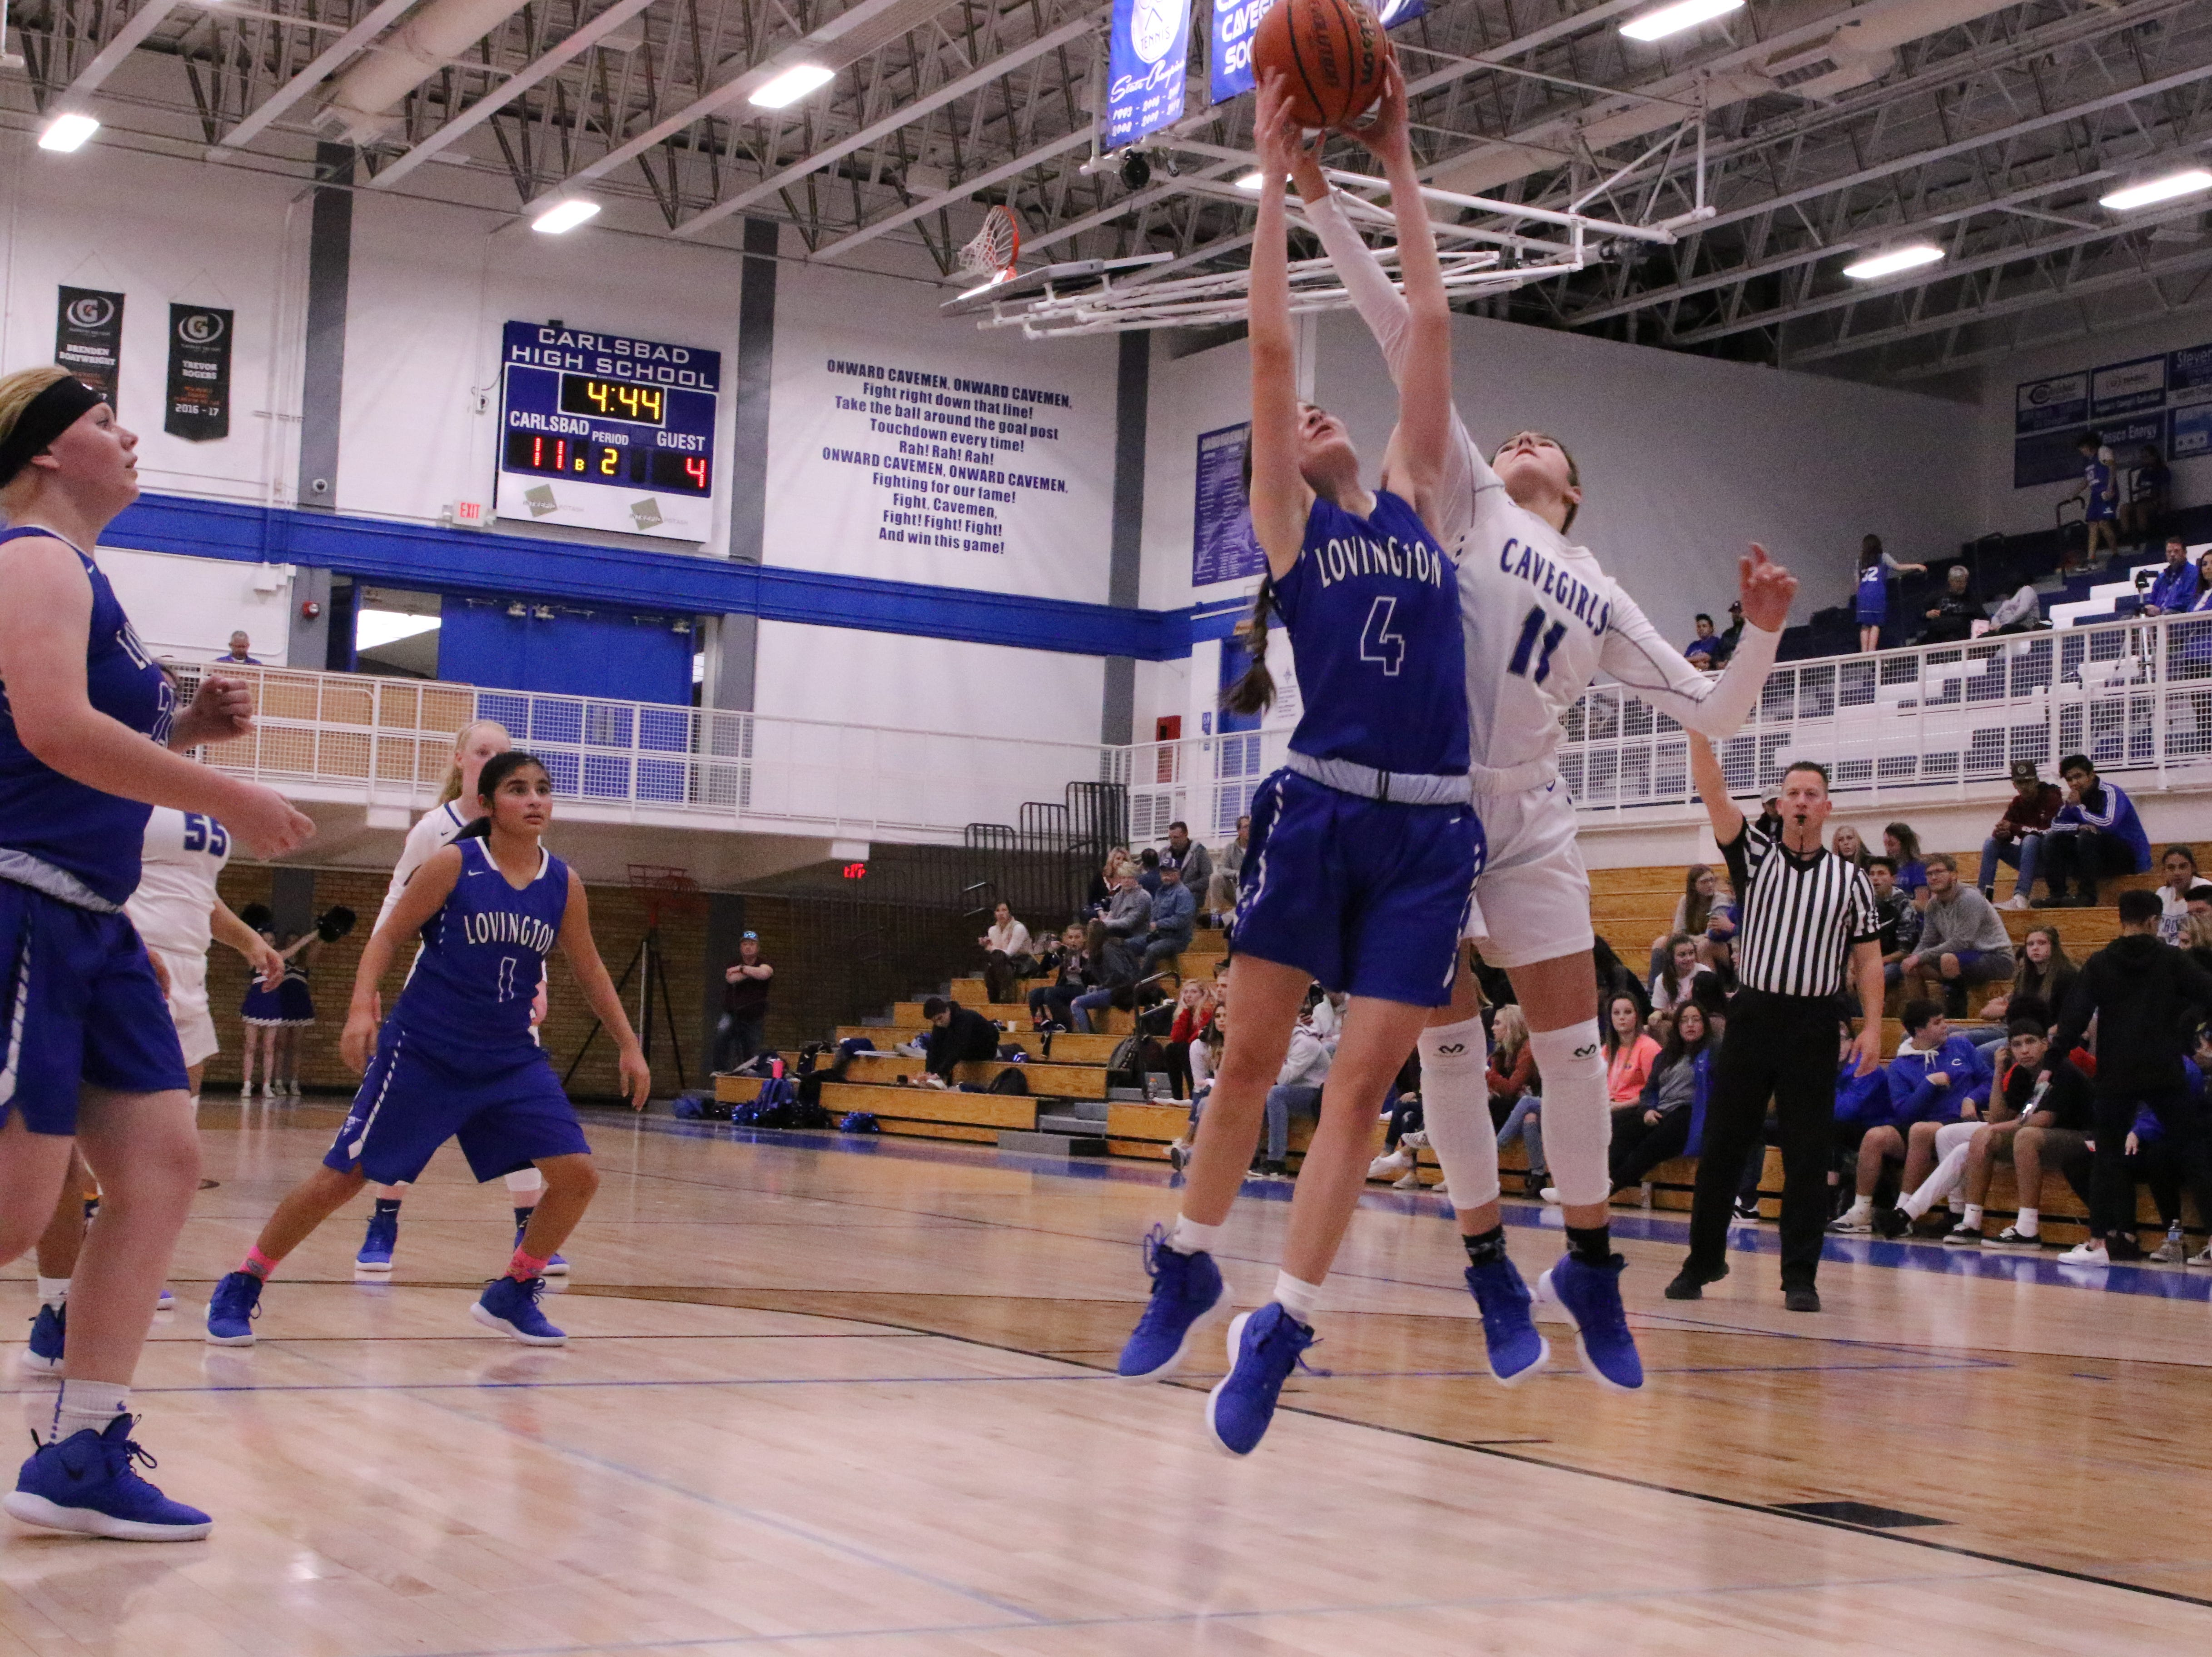 Carlsbad's Teran Tiller (11) gets an offensive rebound in the second quarter against Lovington. Tiller would find Carsyn Boswell for an open 3-pointer to start a 24-2 run in the quarter.